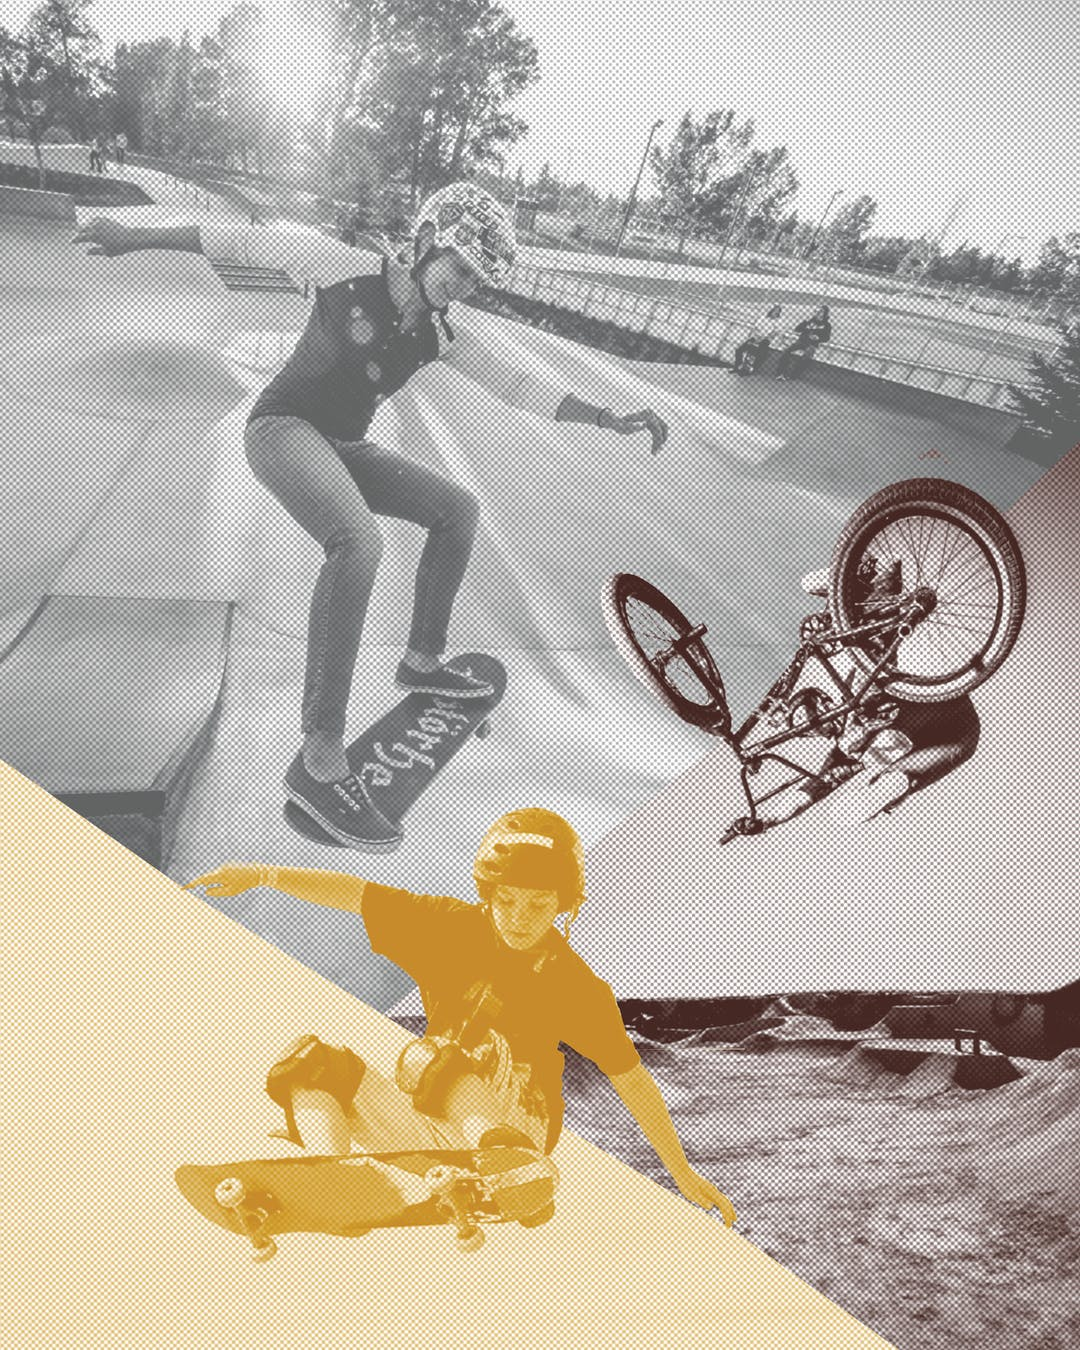 An image of people skateboarding and BMX biking